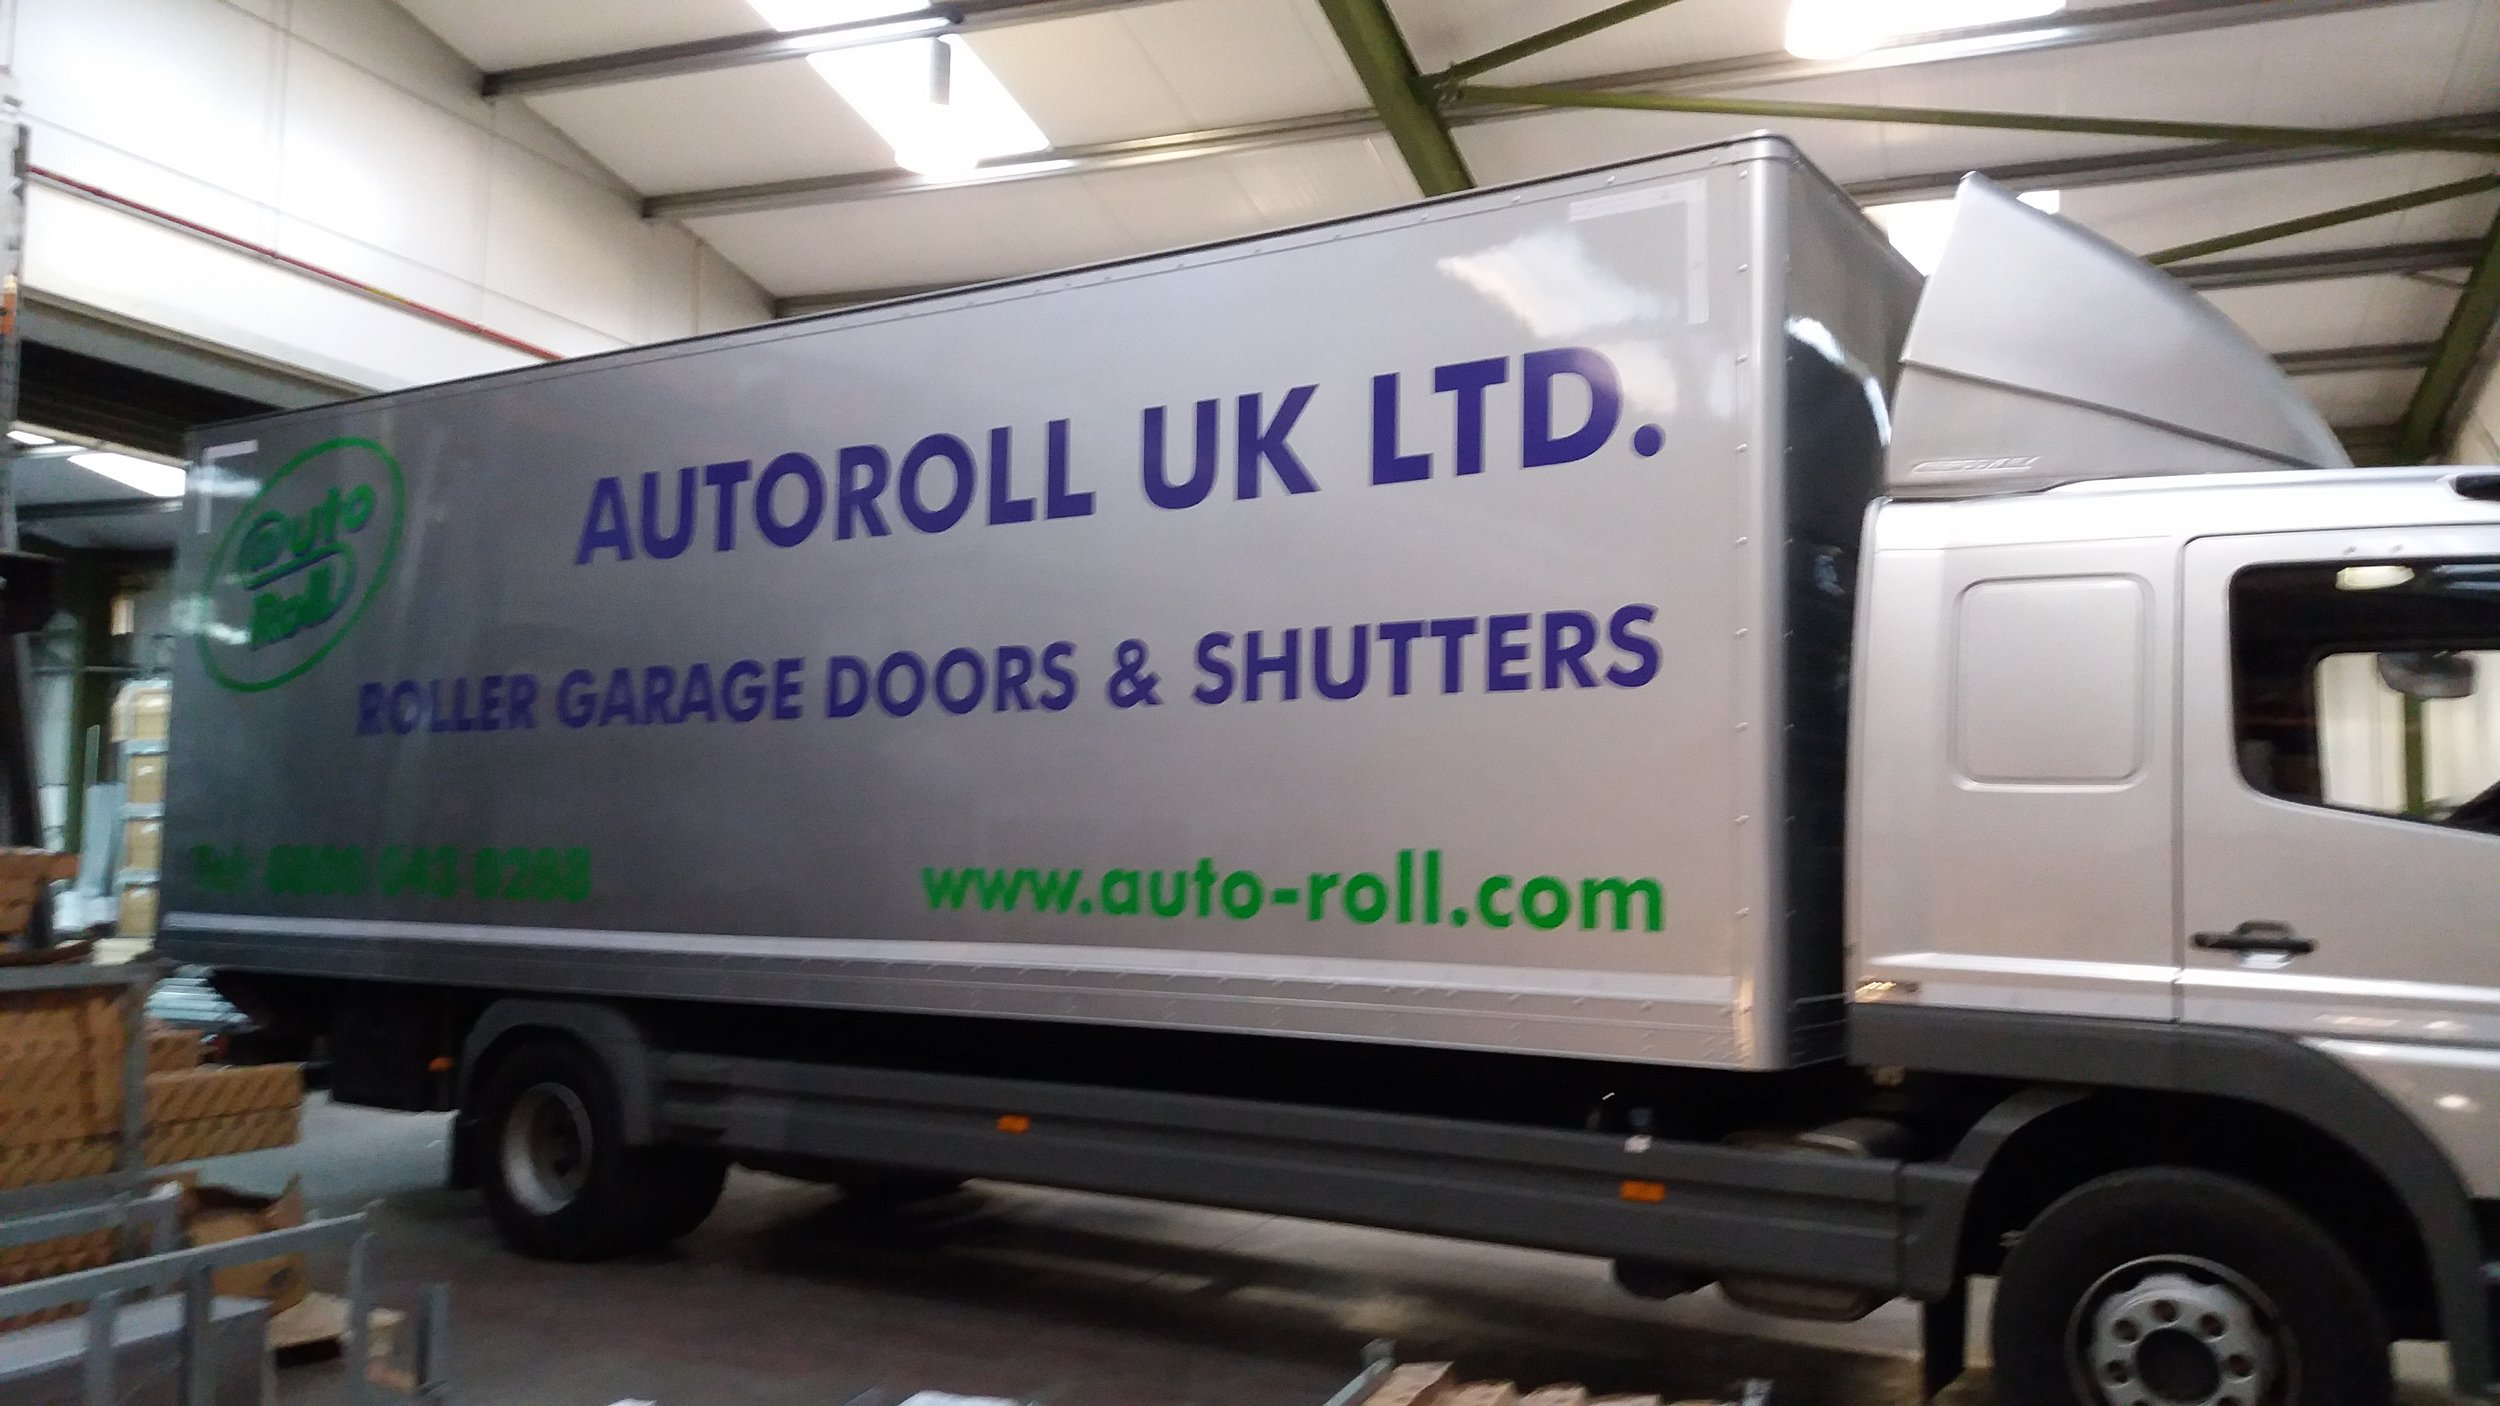 AUTOROLL   Simple but effective vehicle decals.